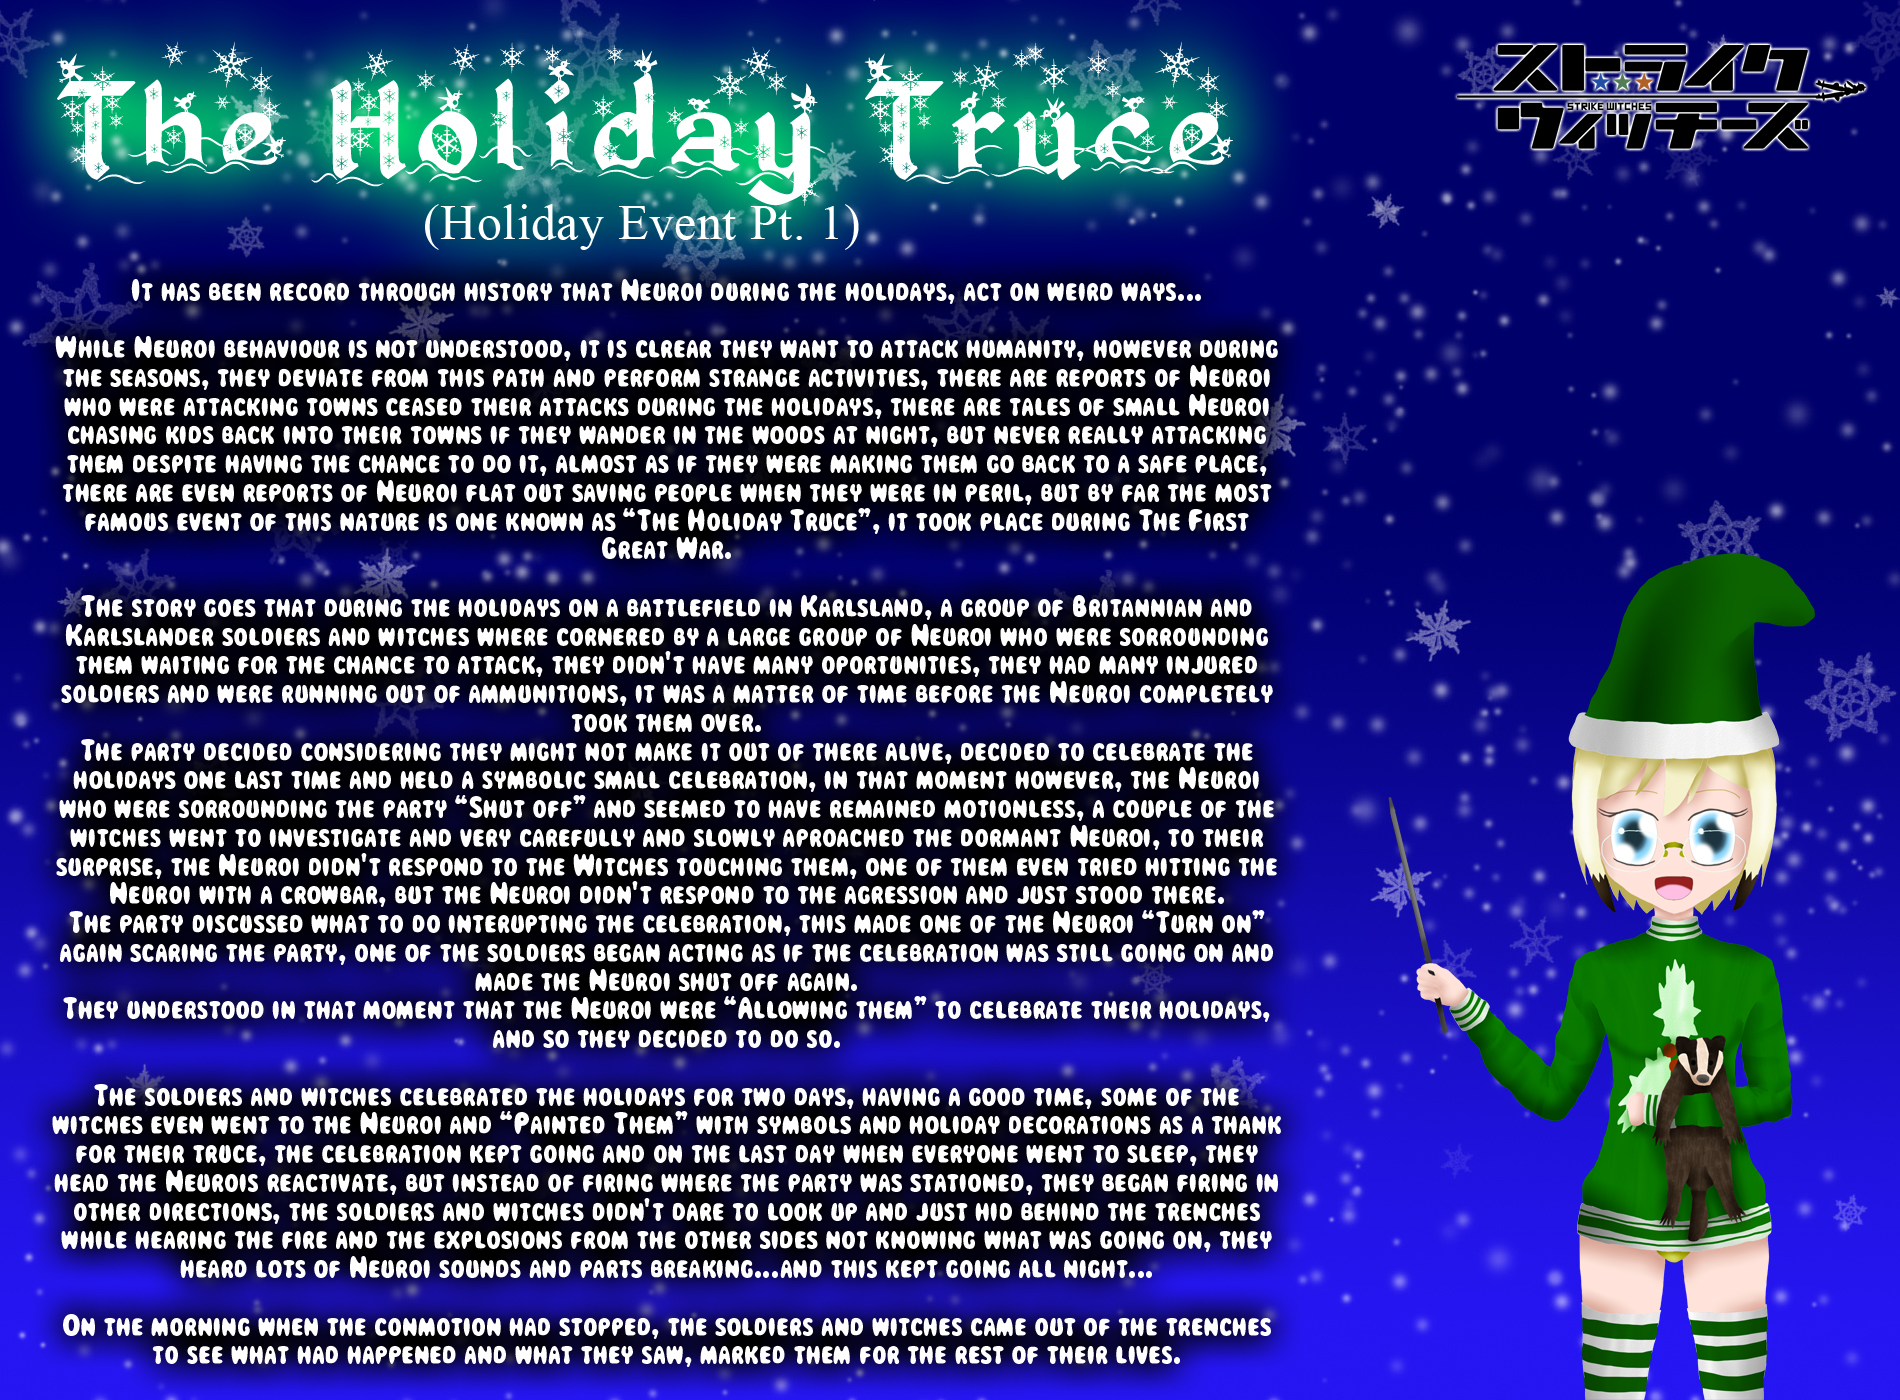 Holiday Witches 9#: The Holiday Truce (Pt 1) by ThanyTony